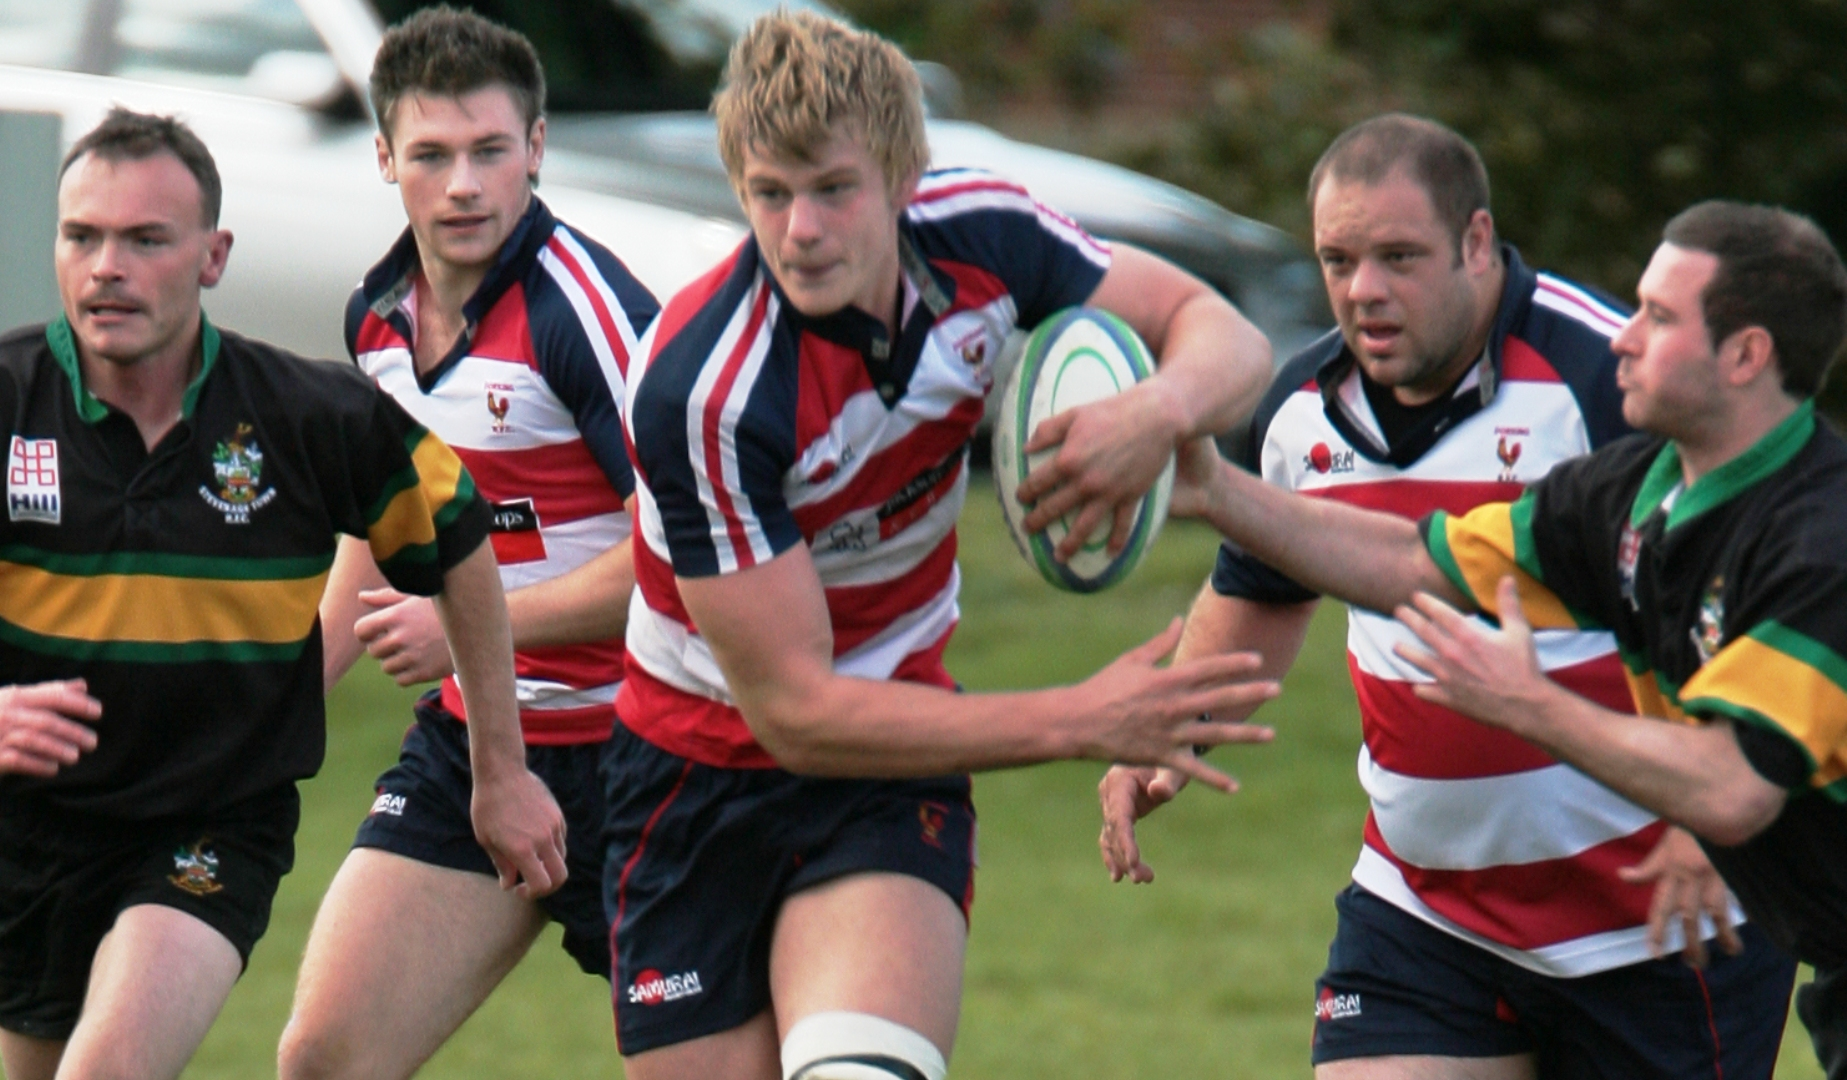 Your Club Your Lions: Dorking RFC